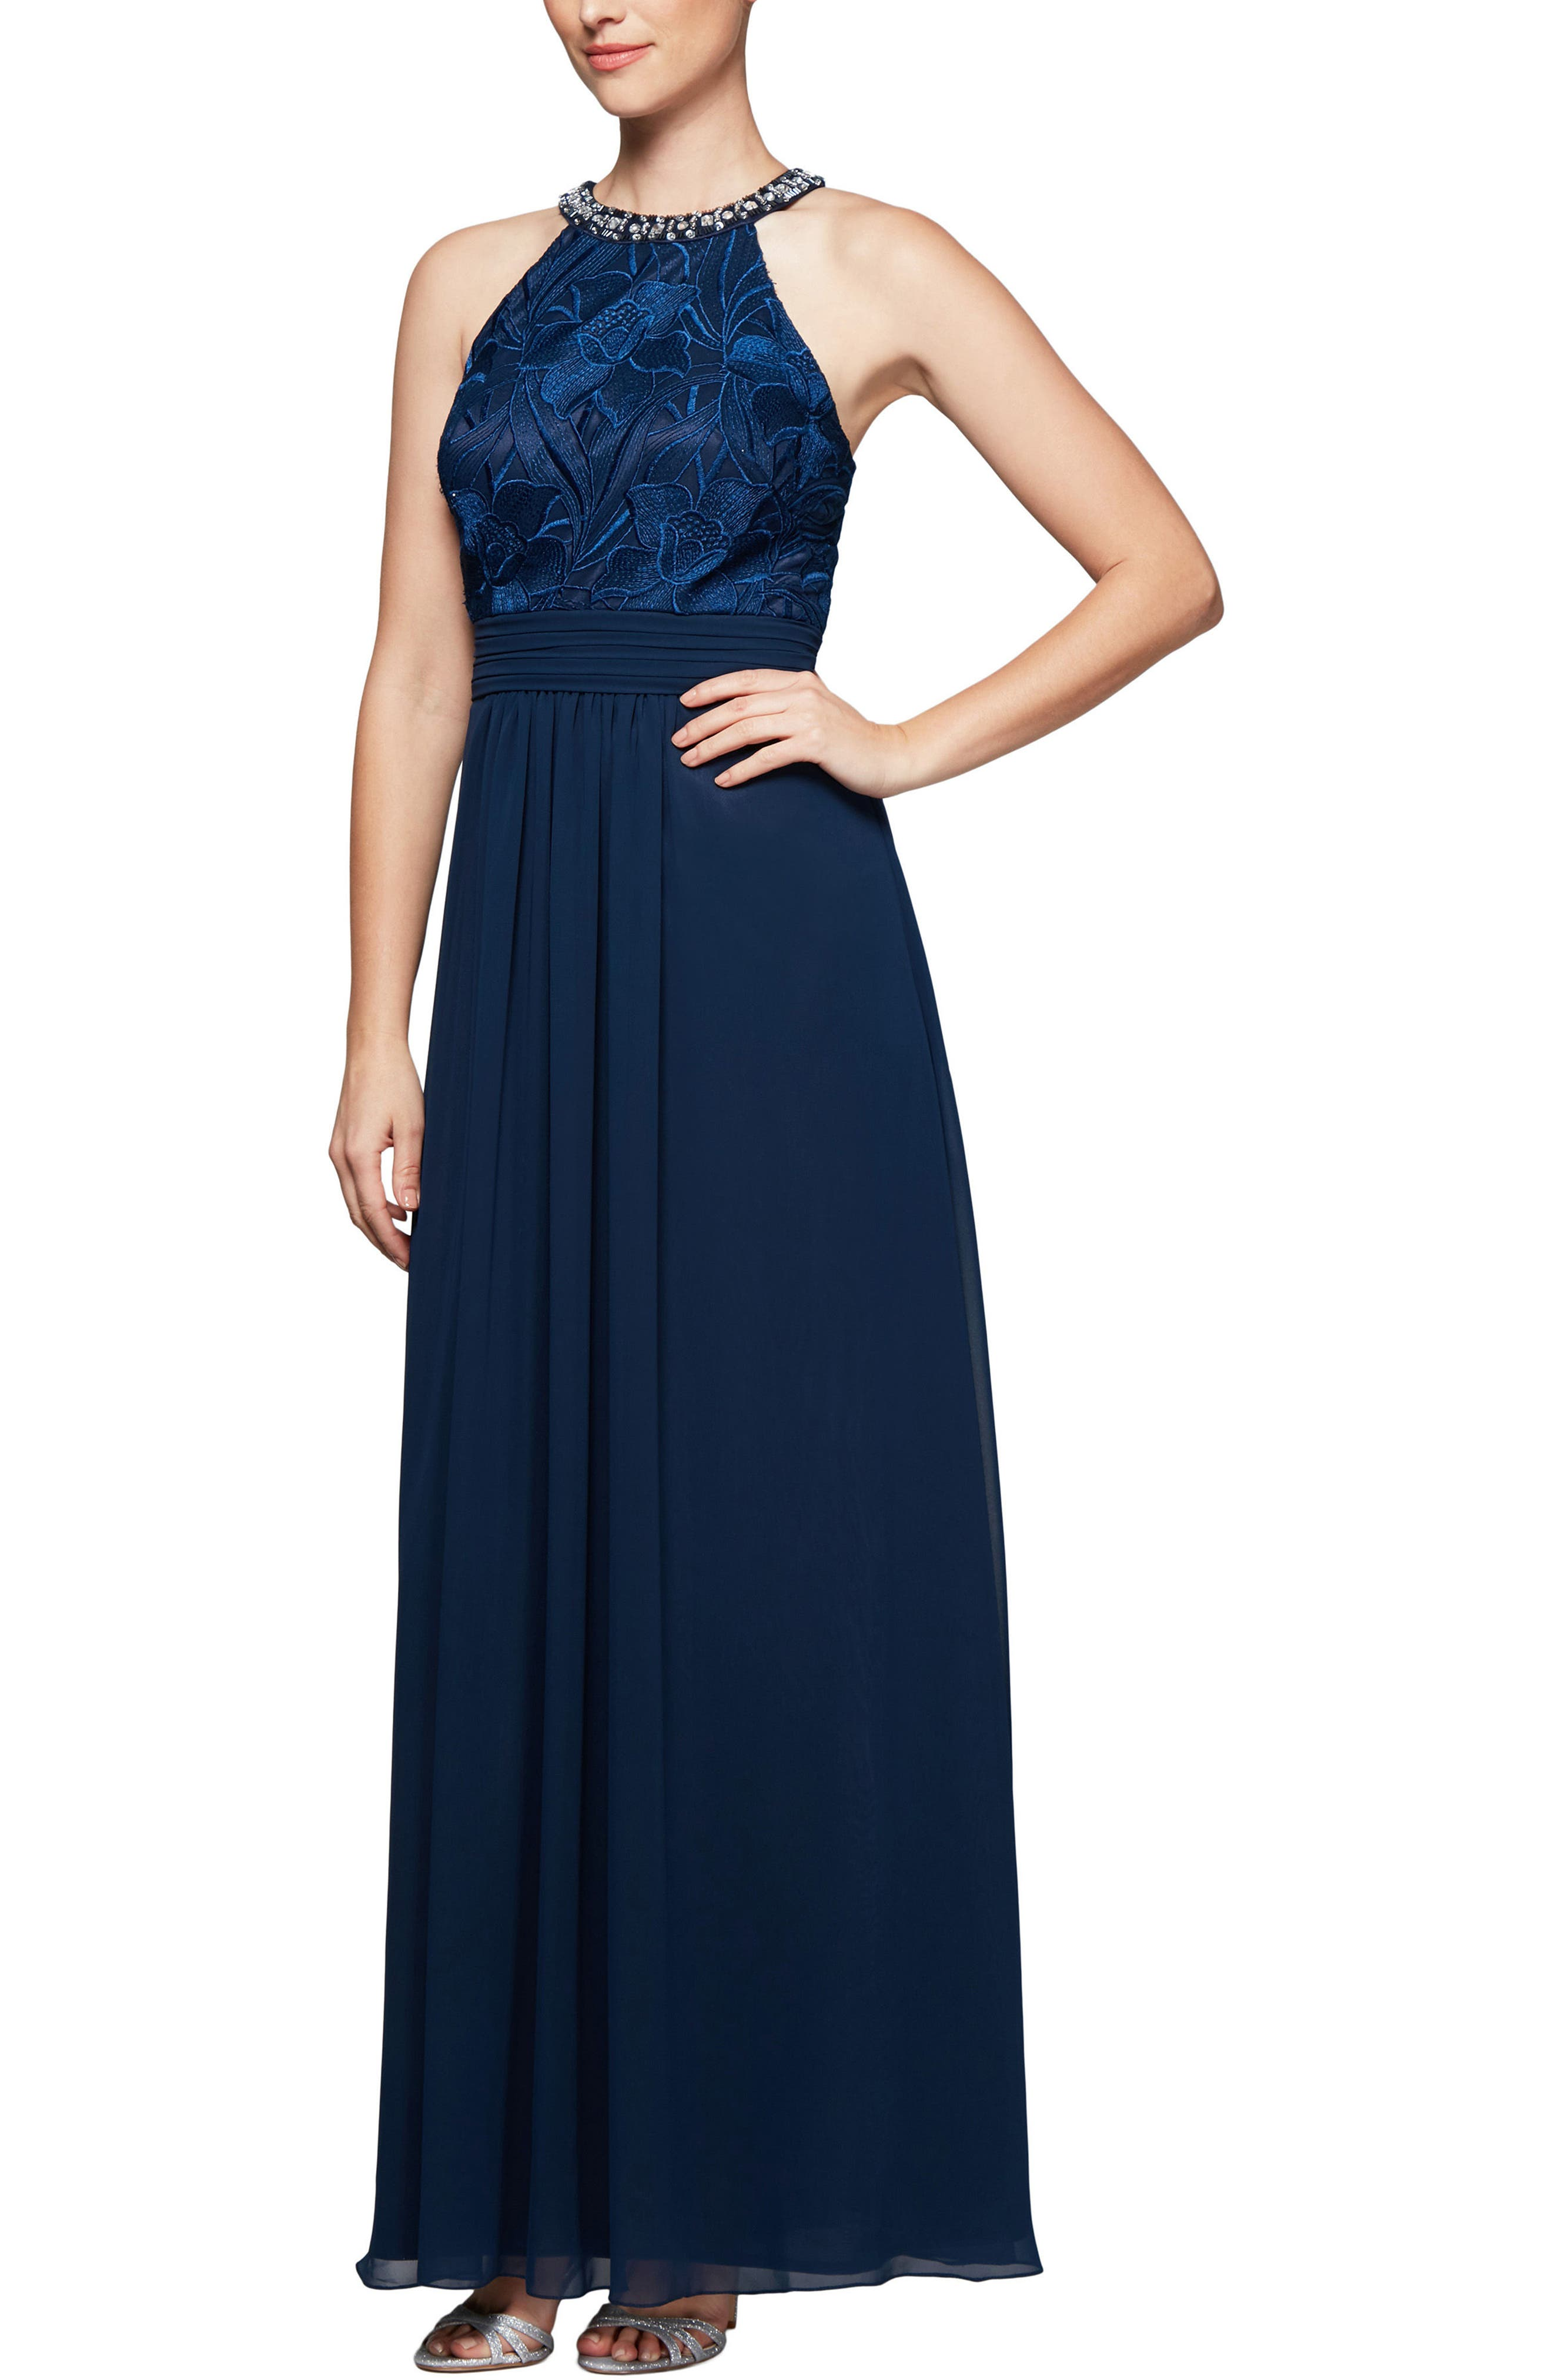 Crystal Embellished Halter Gown,                             Main thumbnail 1, color,                             430